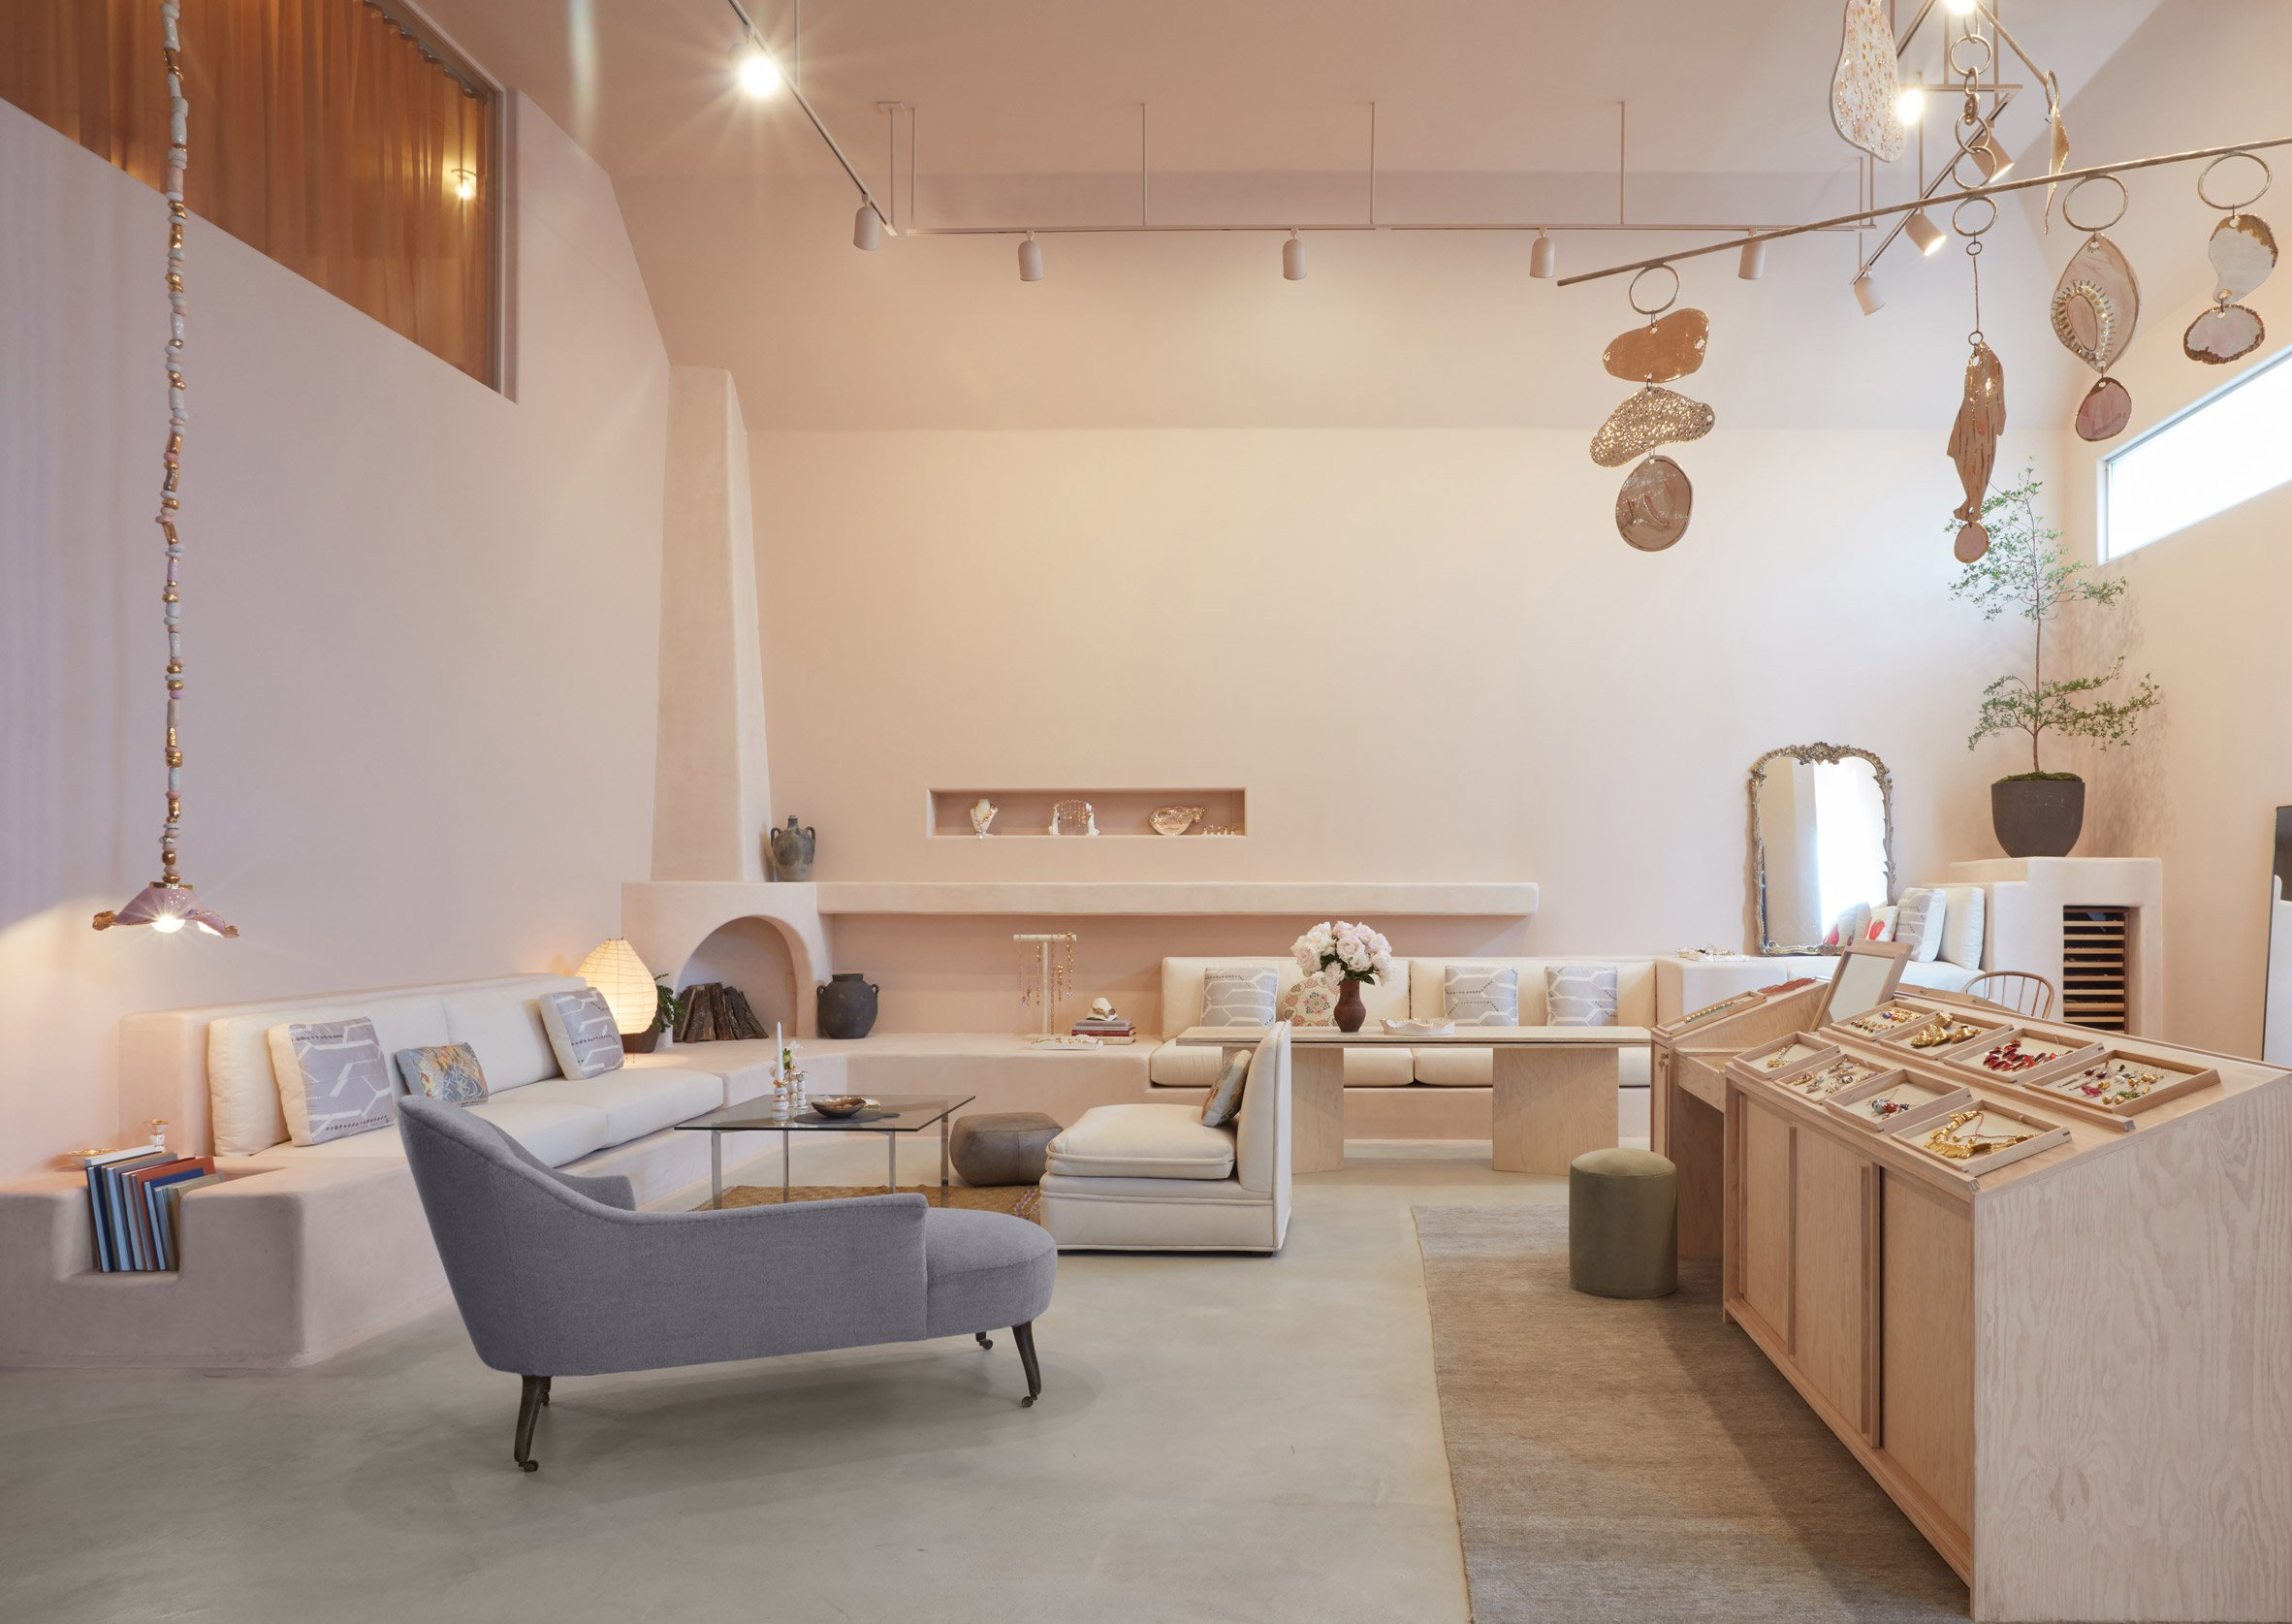 Sonia Boyajian studio and store by Studio Shamshiri